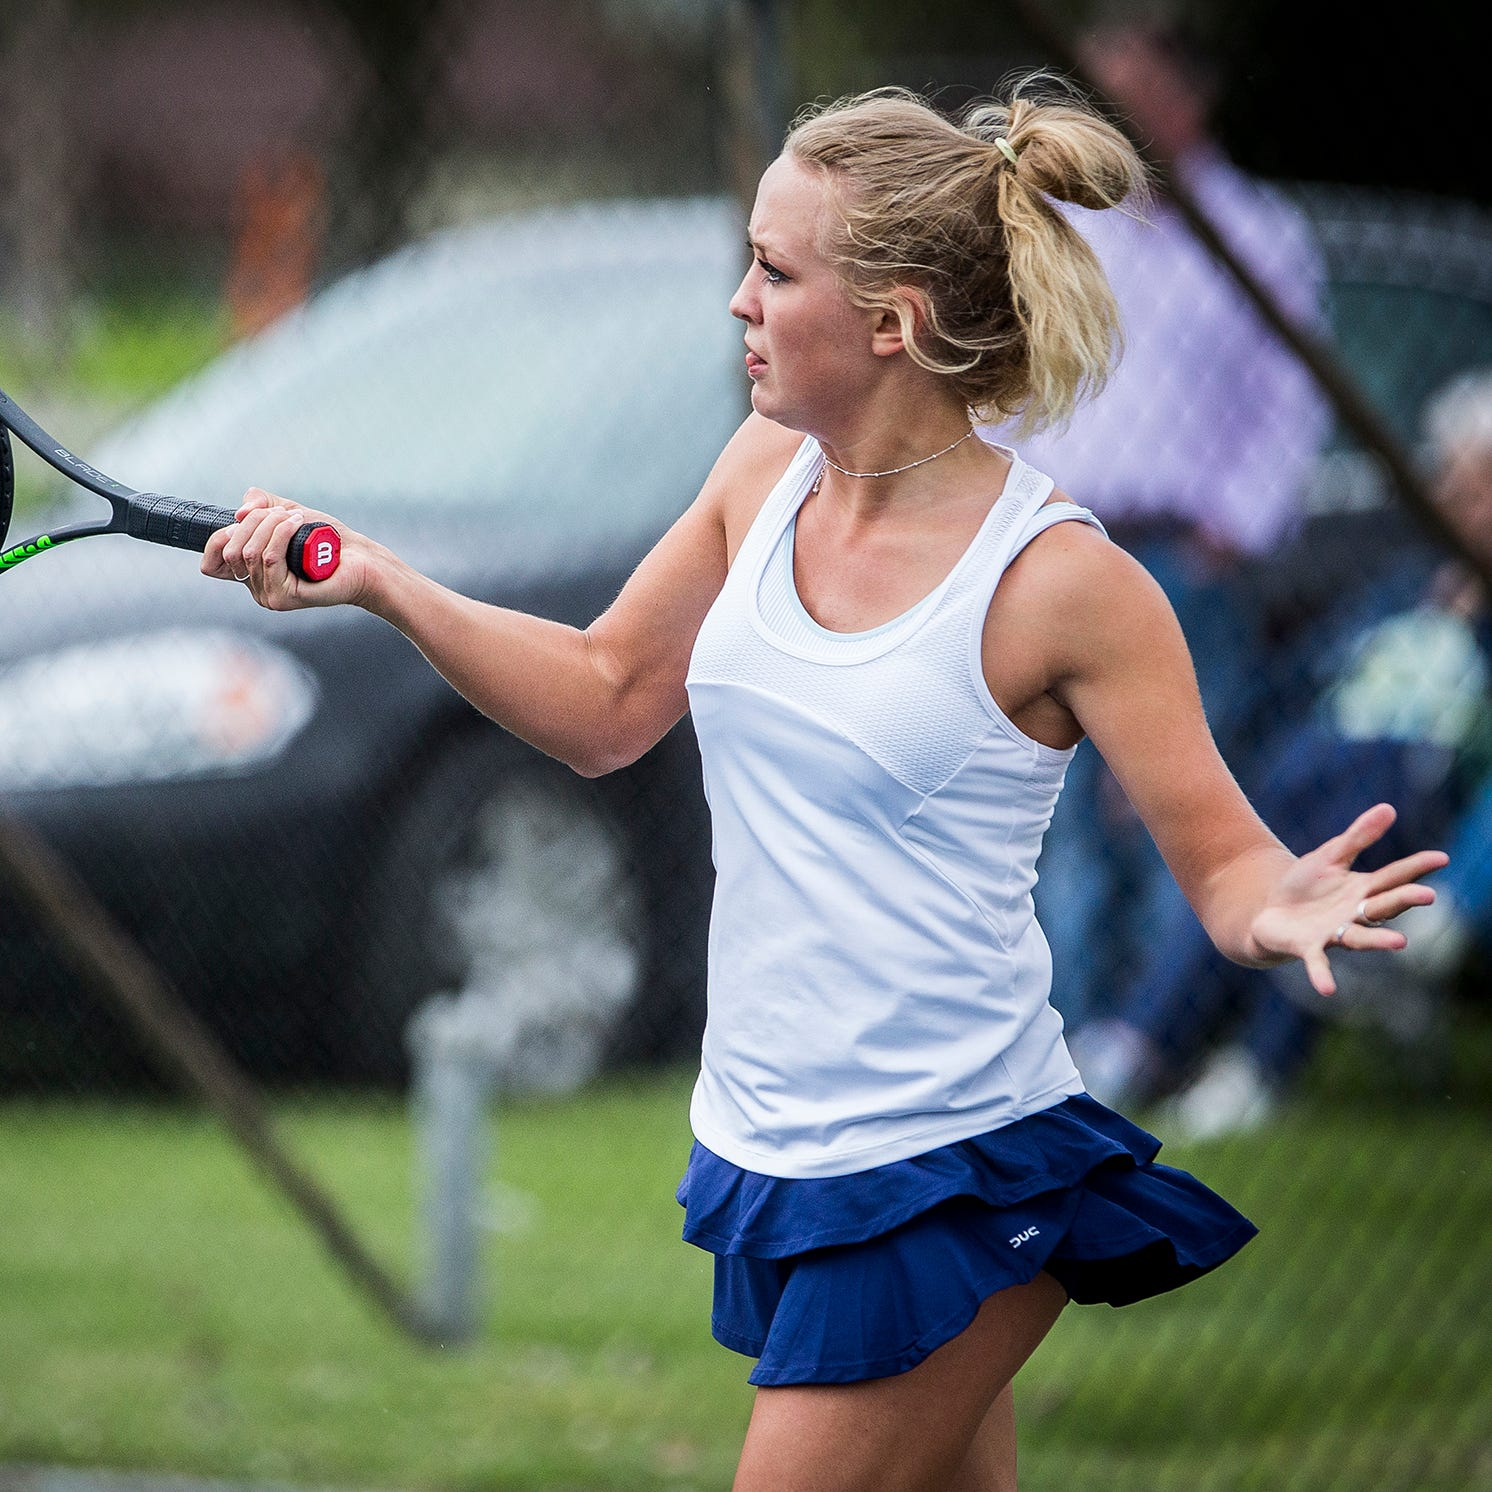 HS rundown: Delta girls tennis finishes regular season with just one loss